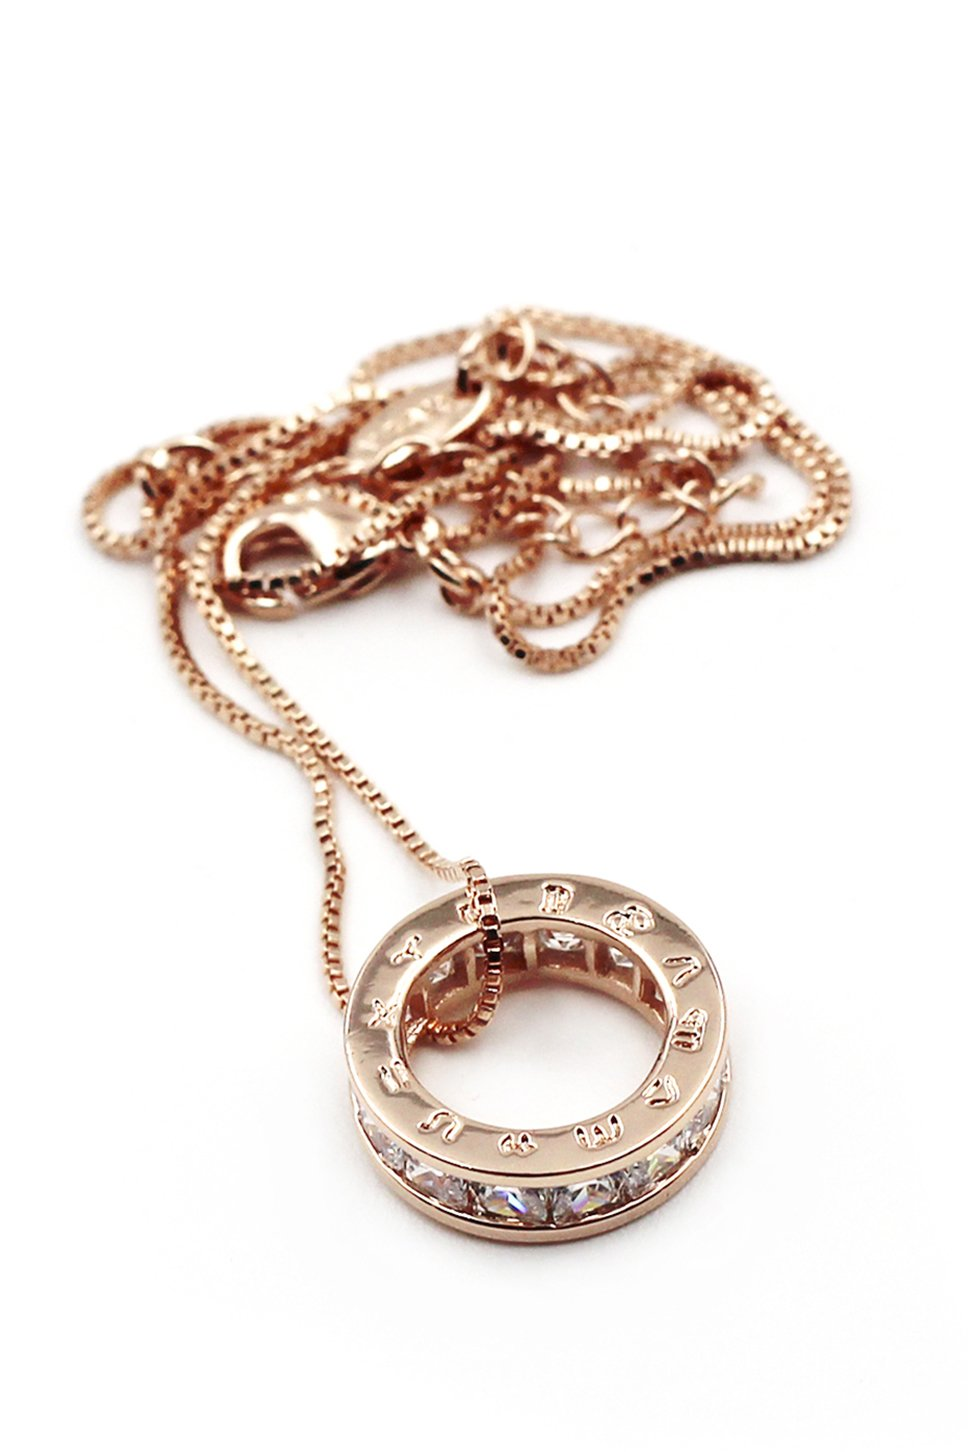 Circle the letter crystal rose gold necklace